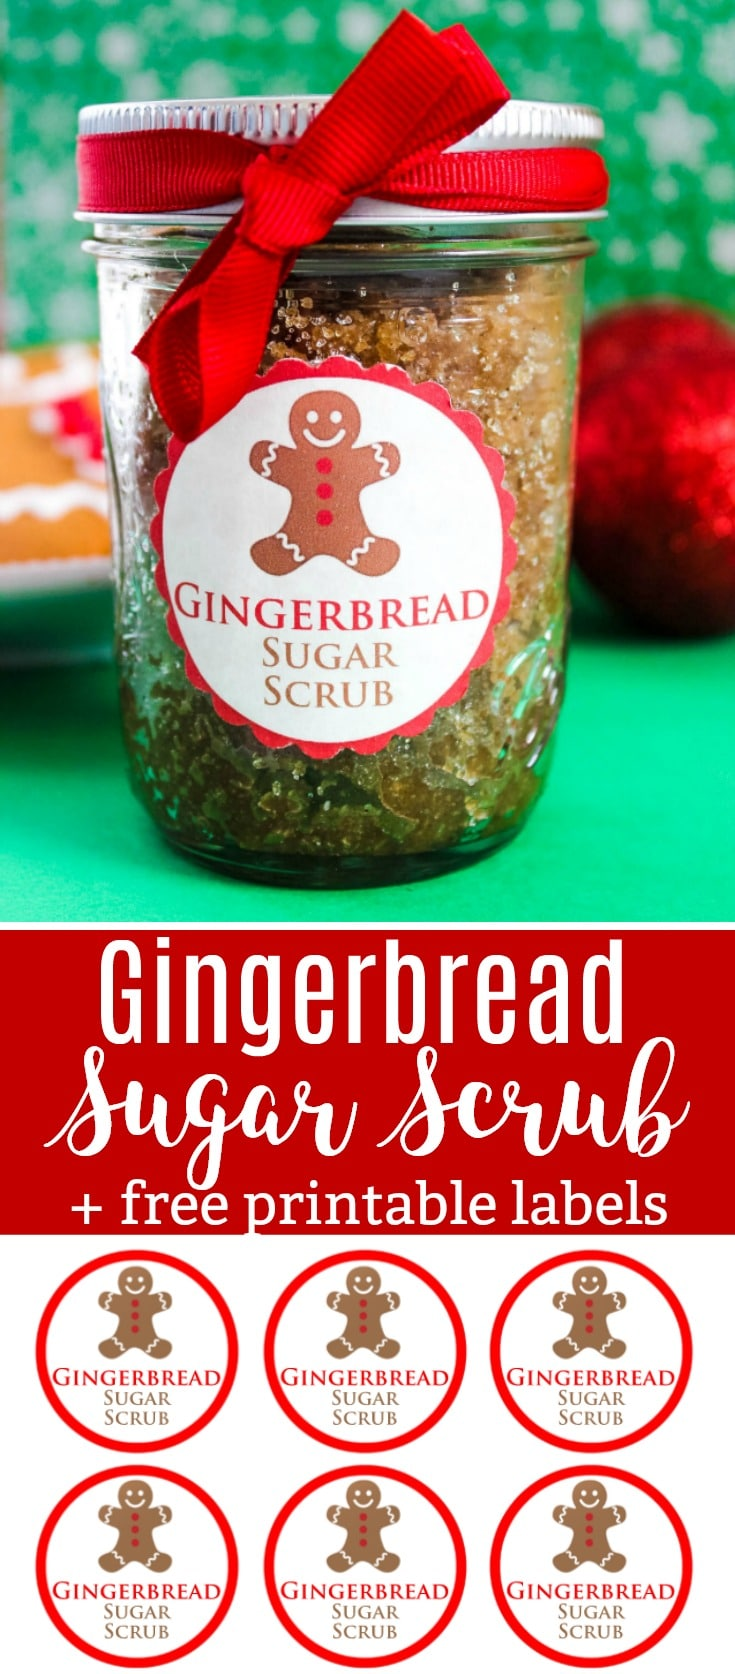 Gingerbread Sugar Scrub Recipe with Free Printable Labels - Perfect for Gift Giving!